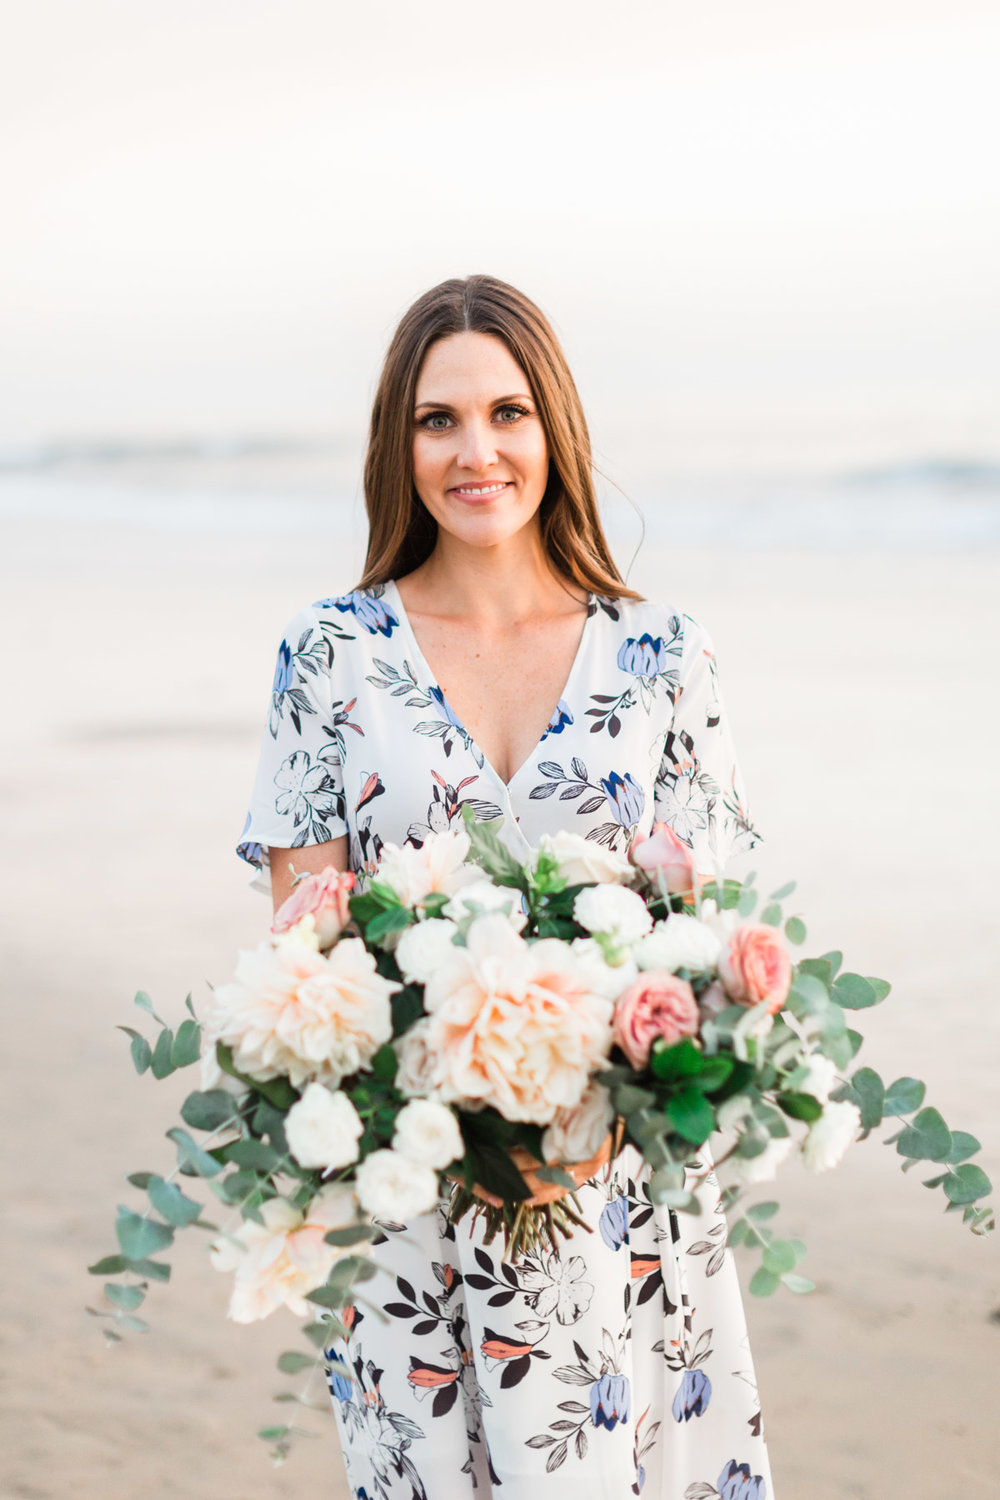 Romantic beach bridal bouquet of dahlias, roses and eucalyptus | Newport Beach, CA | Compass Floral | Wedding Florist in San Diego and Southern California | Cavin Elizabeth Photography